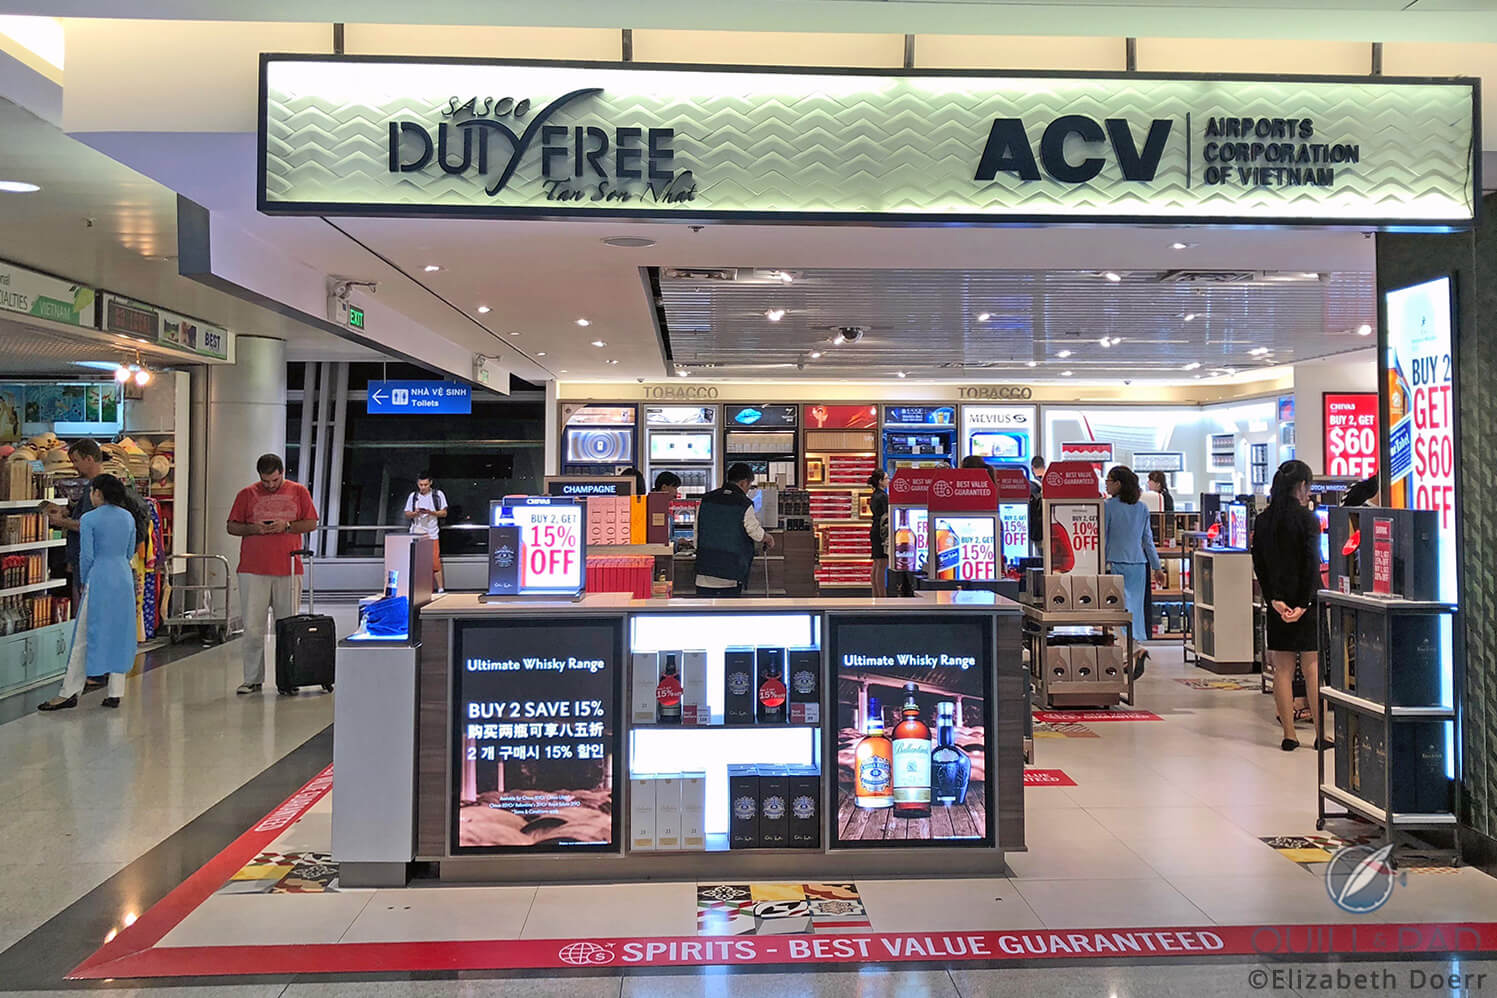 Sydney Airport Shops Shopping The Airports For A Luxury Watch Customs Duties And